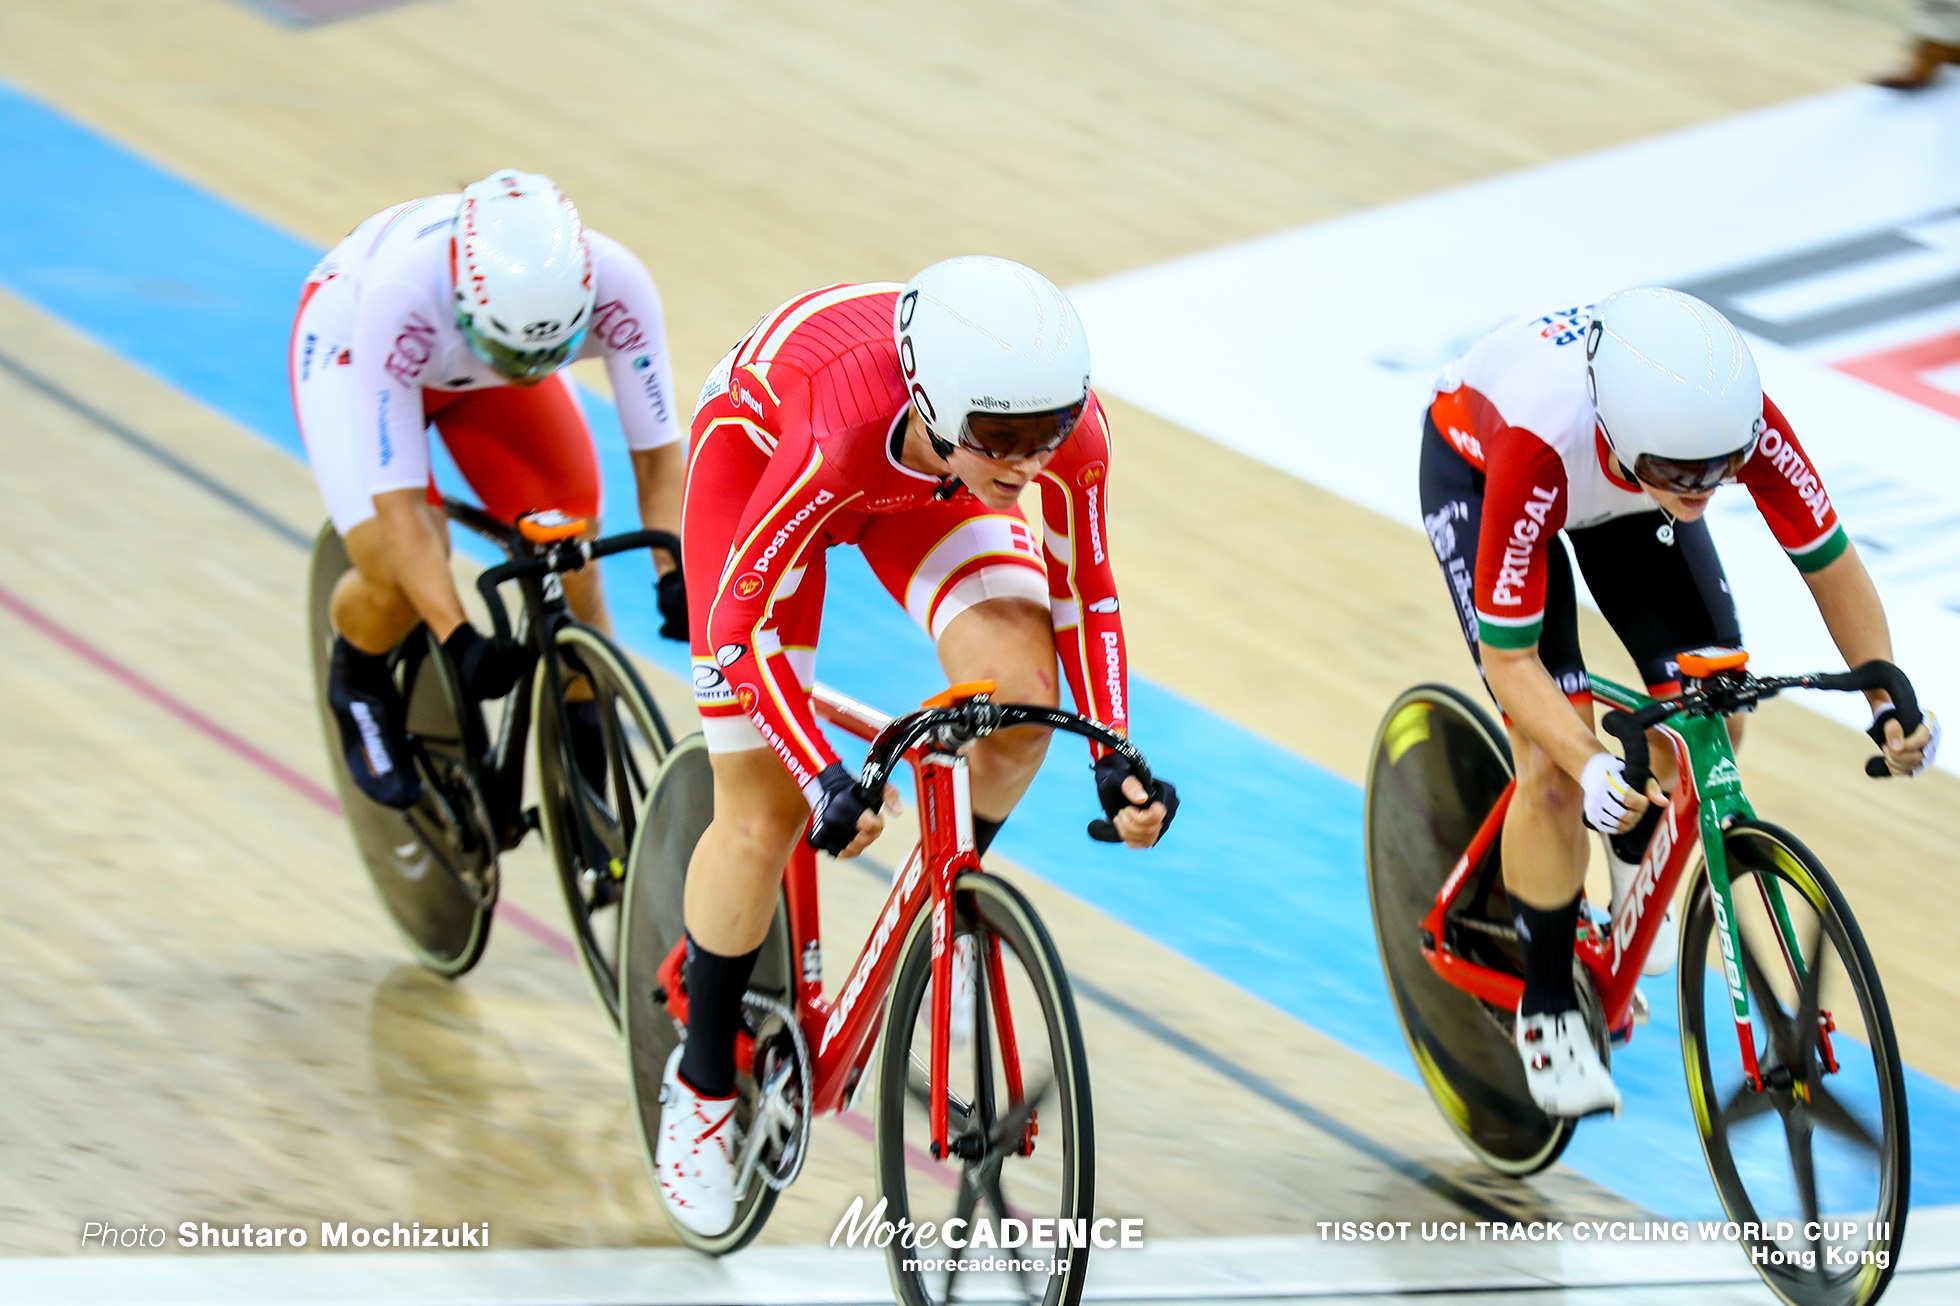 Elimination / Women's Omnium / TISSOT UCI TRACK CYCLING WORLD CUP III, Hong Kong, Julie LETH ジュリー・レス